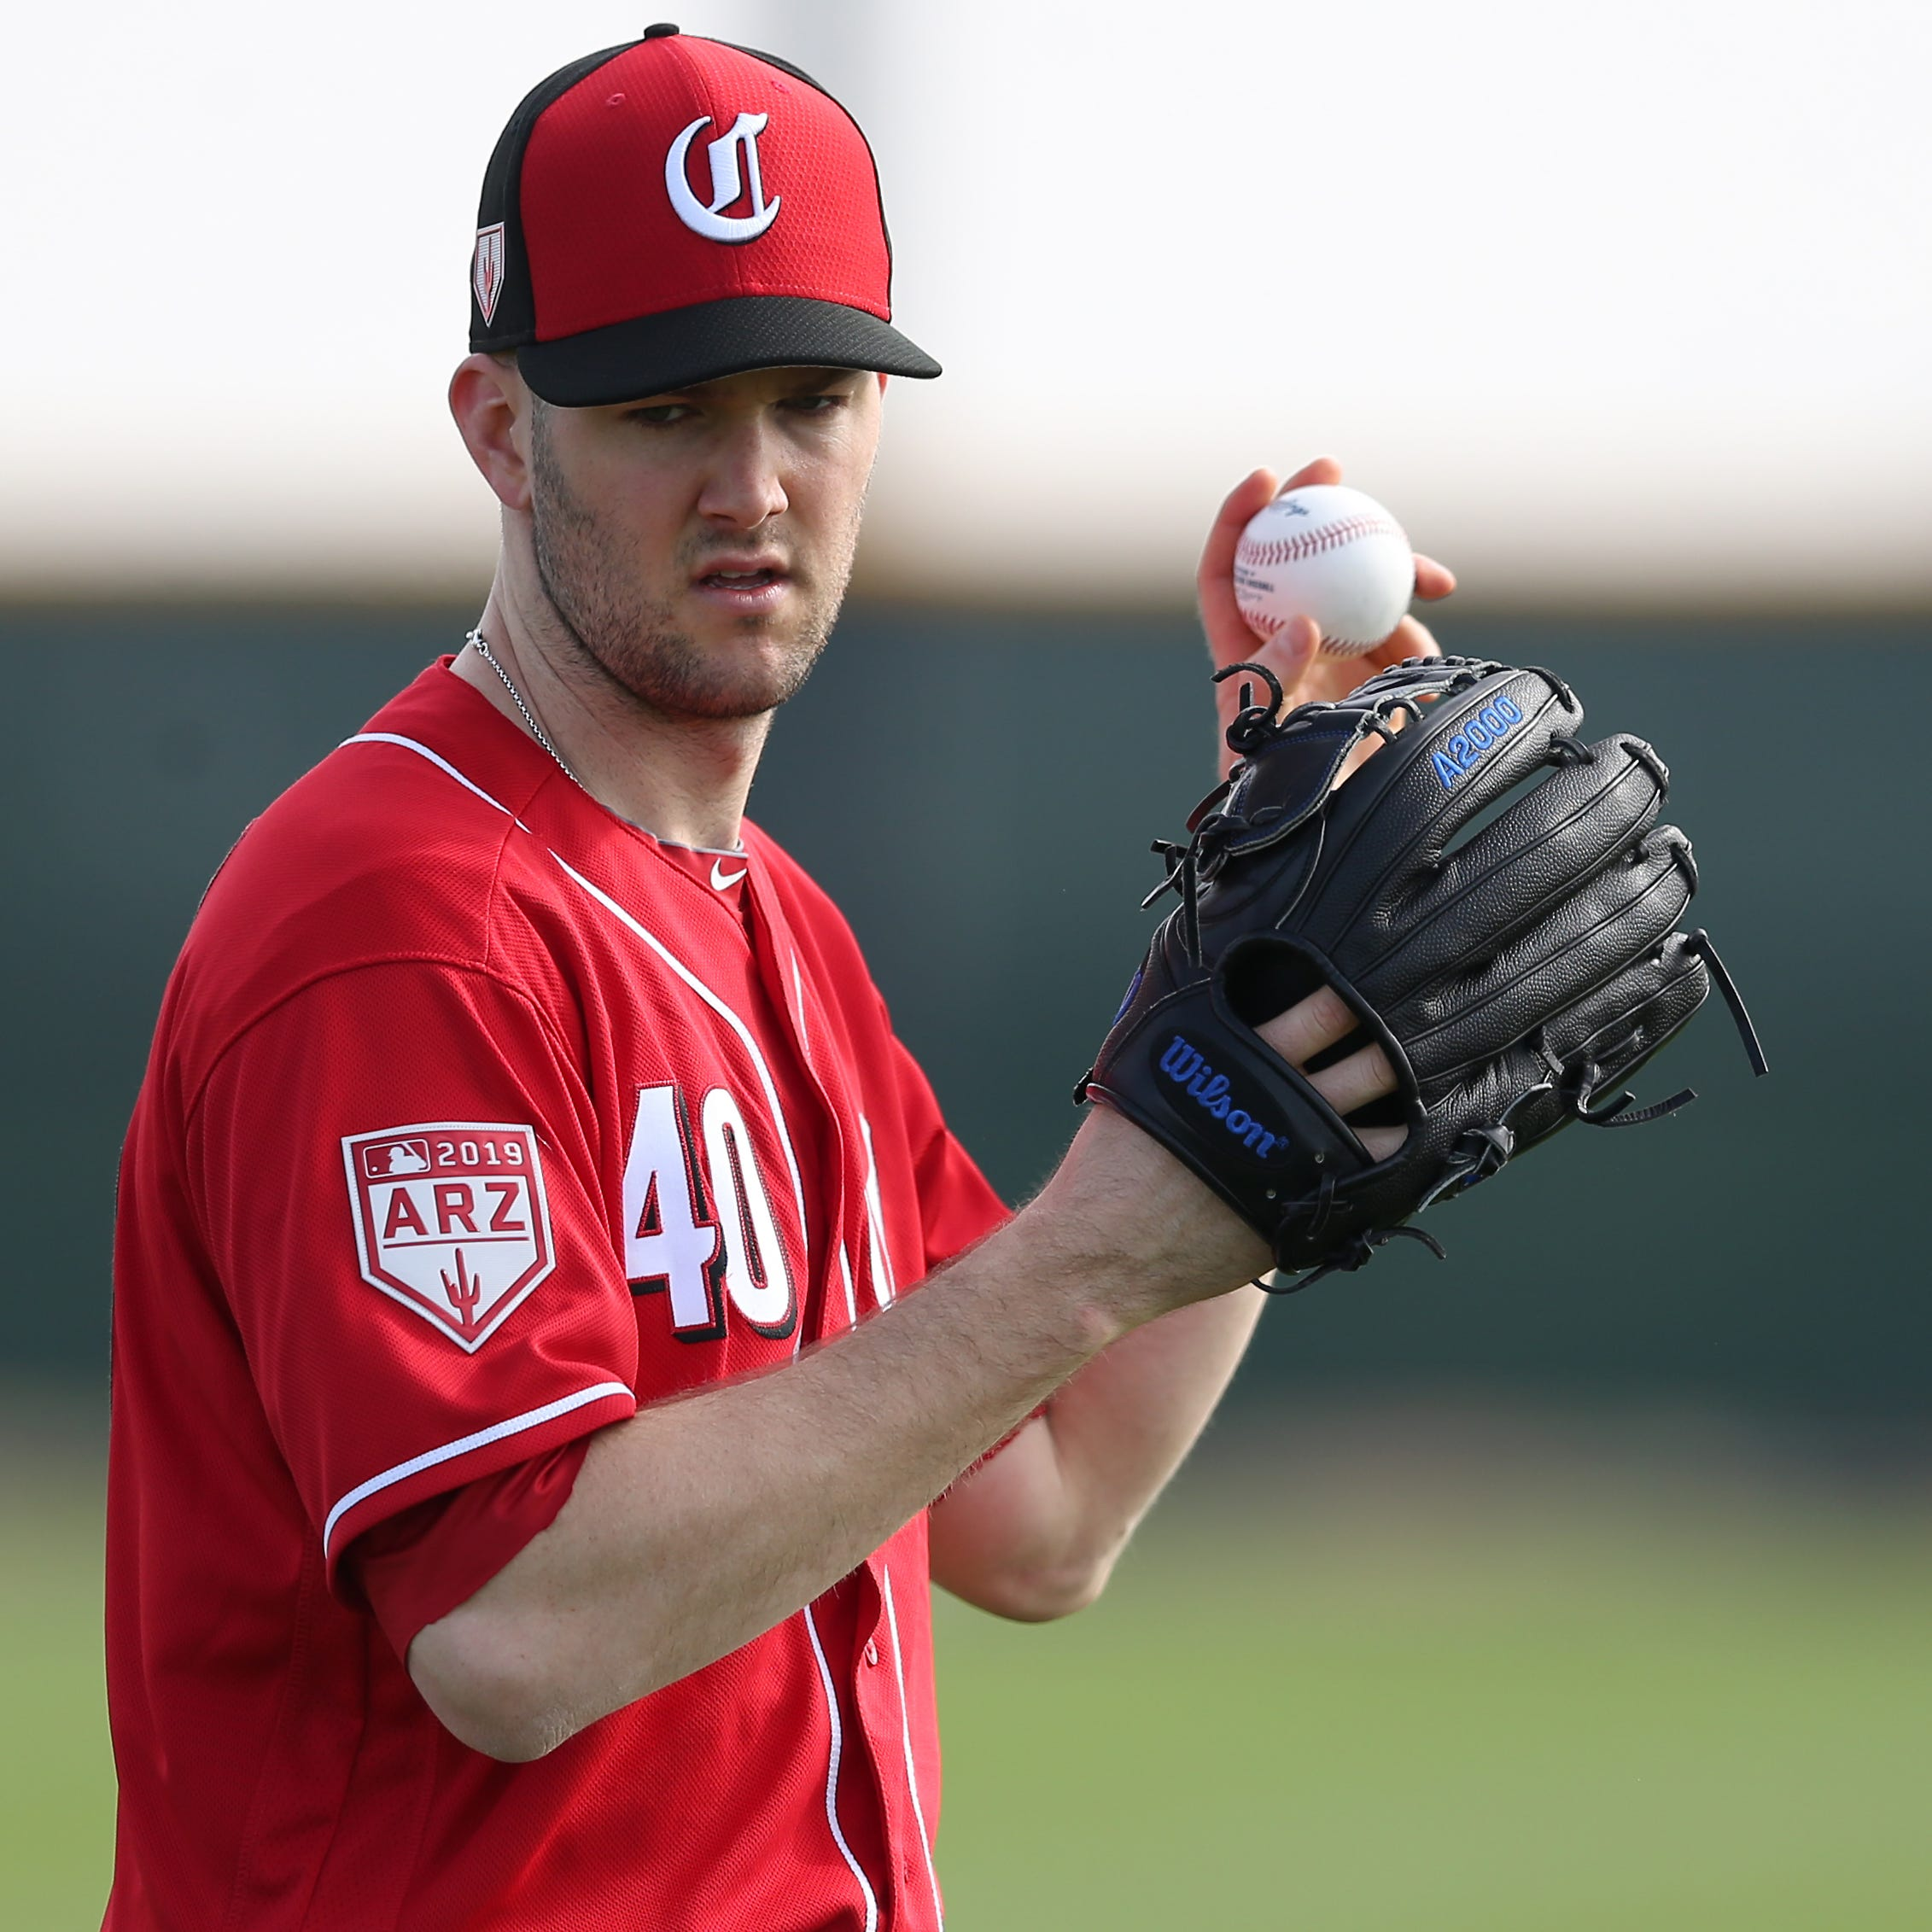 Alex Wood has a setback, return to Cincinnati Reds on hold